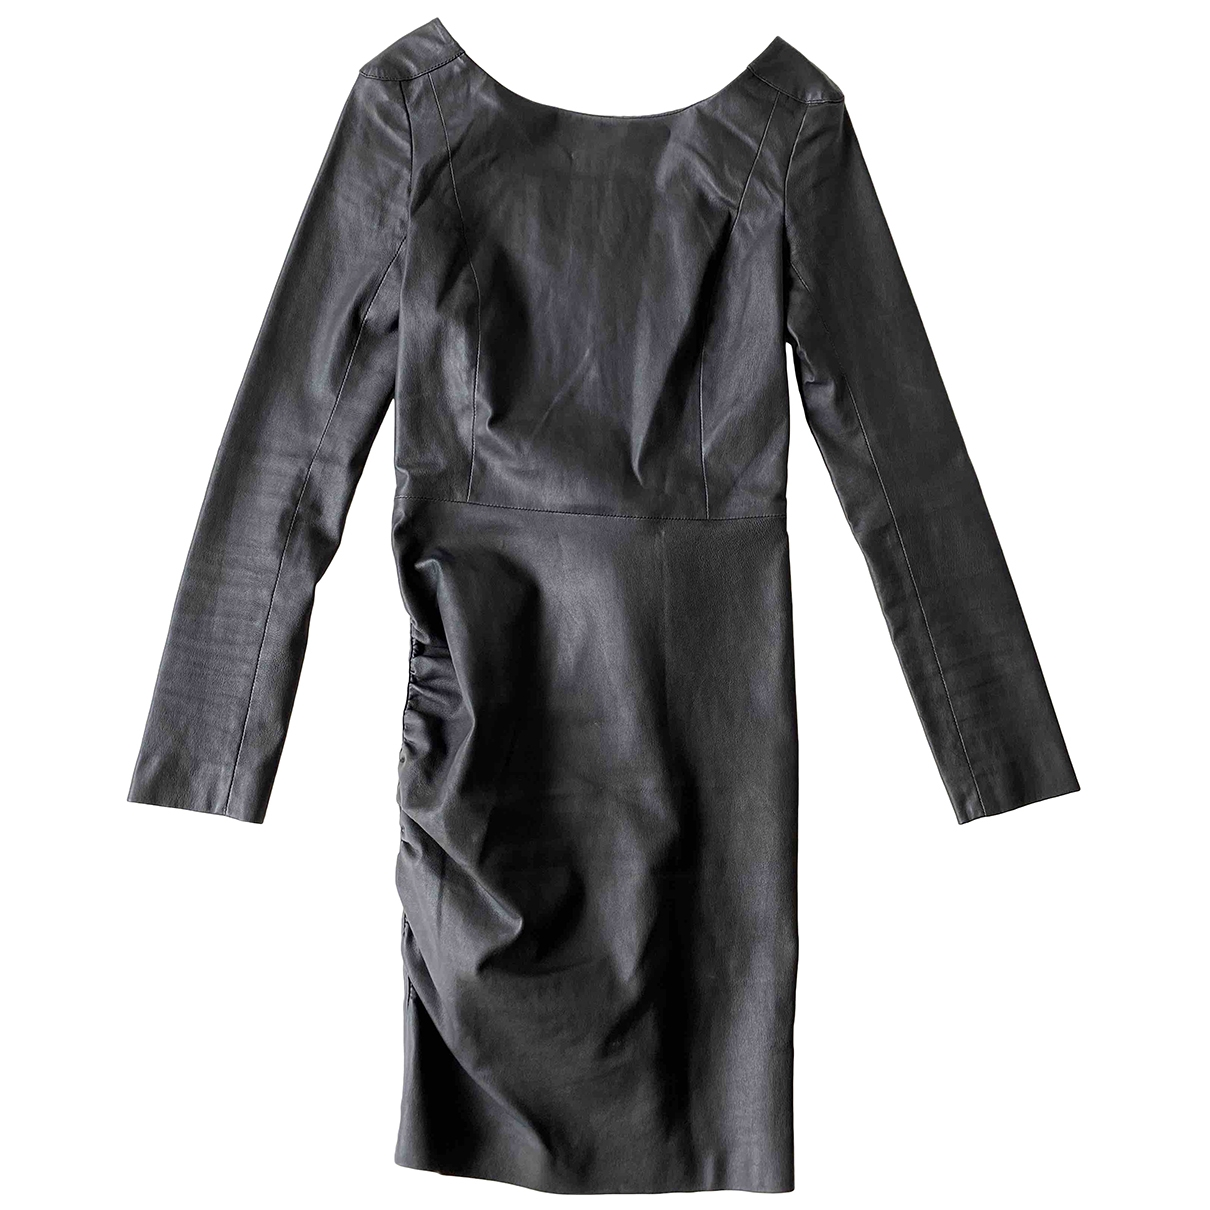 Maje \N Black Leather dress for Women 36 FR